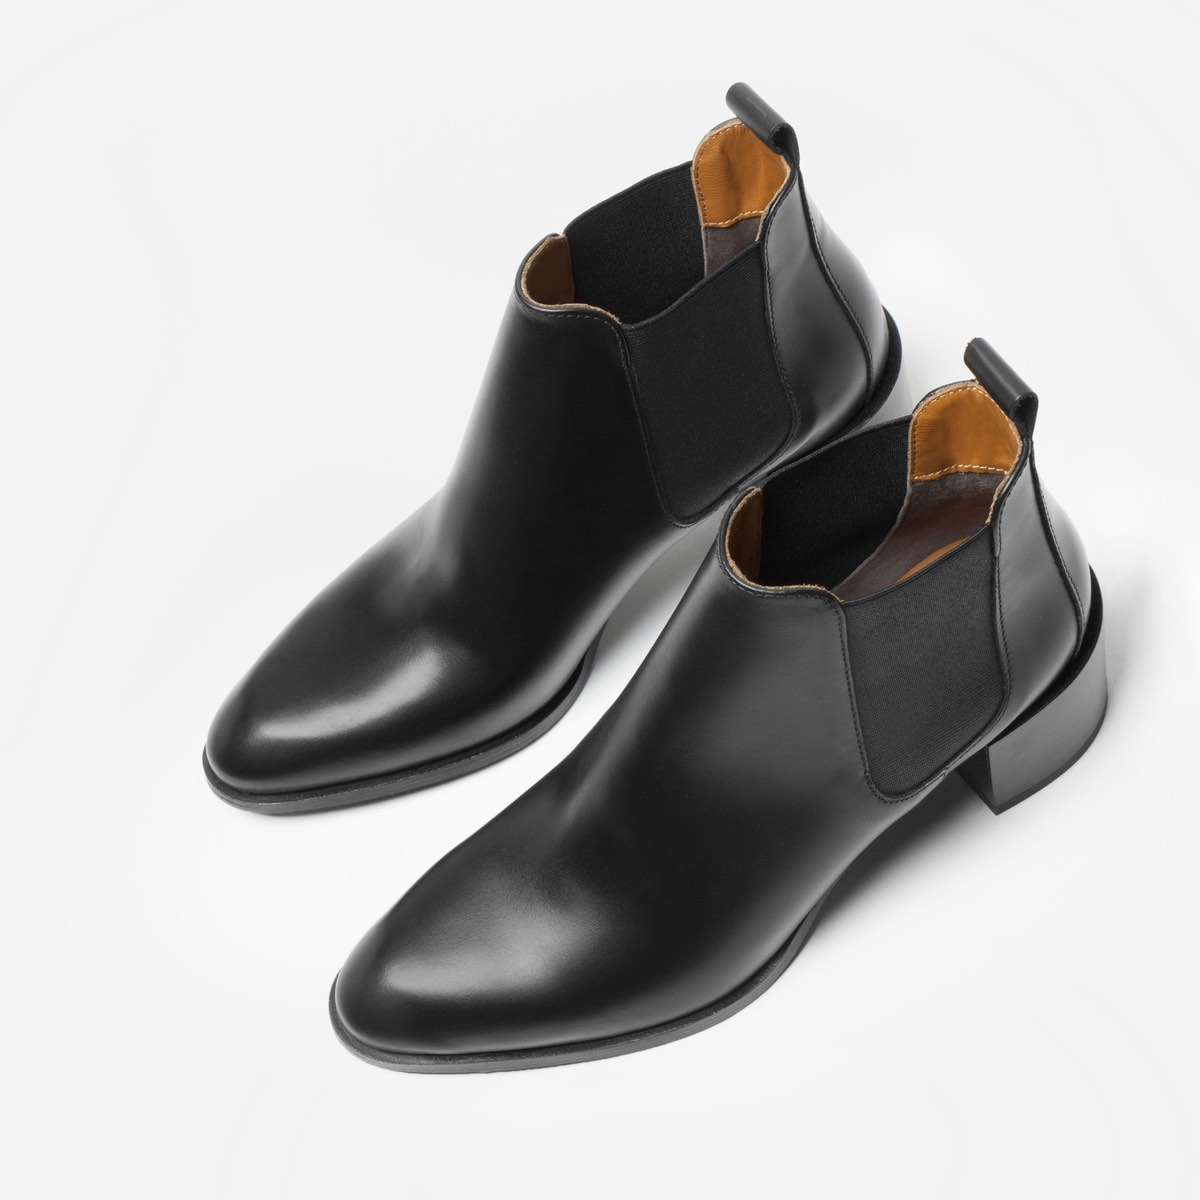 Everlane The Heel Boot, $235, Photo Cred: Everlane